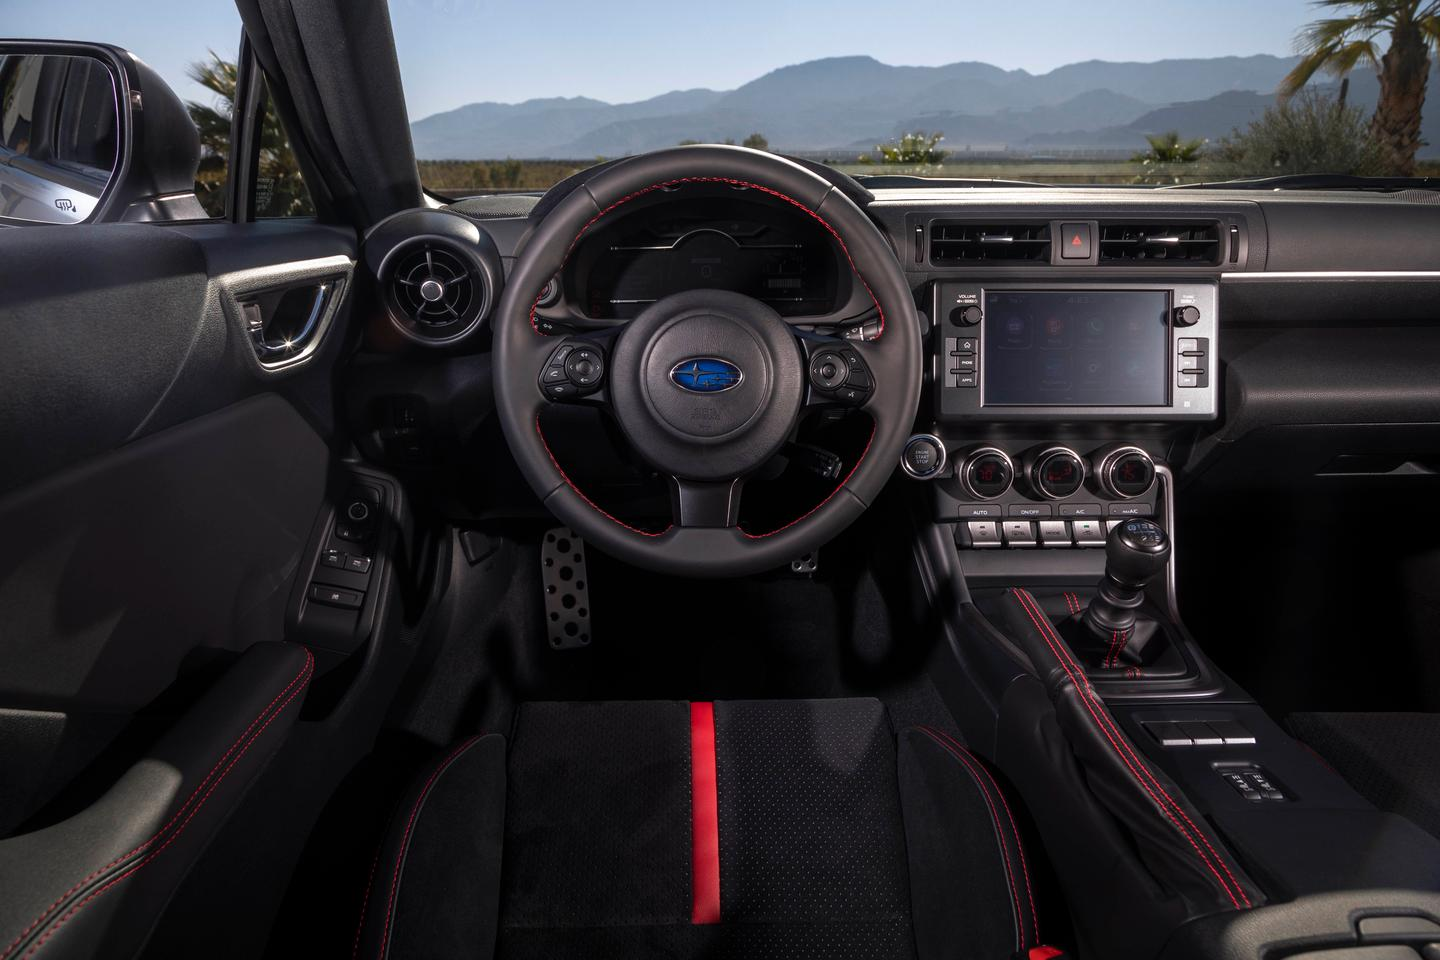 Subaru wanted to step up the interior appeal of the 2022 Subaru BRZ to make it feel more upscale